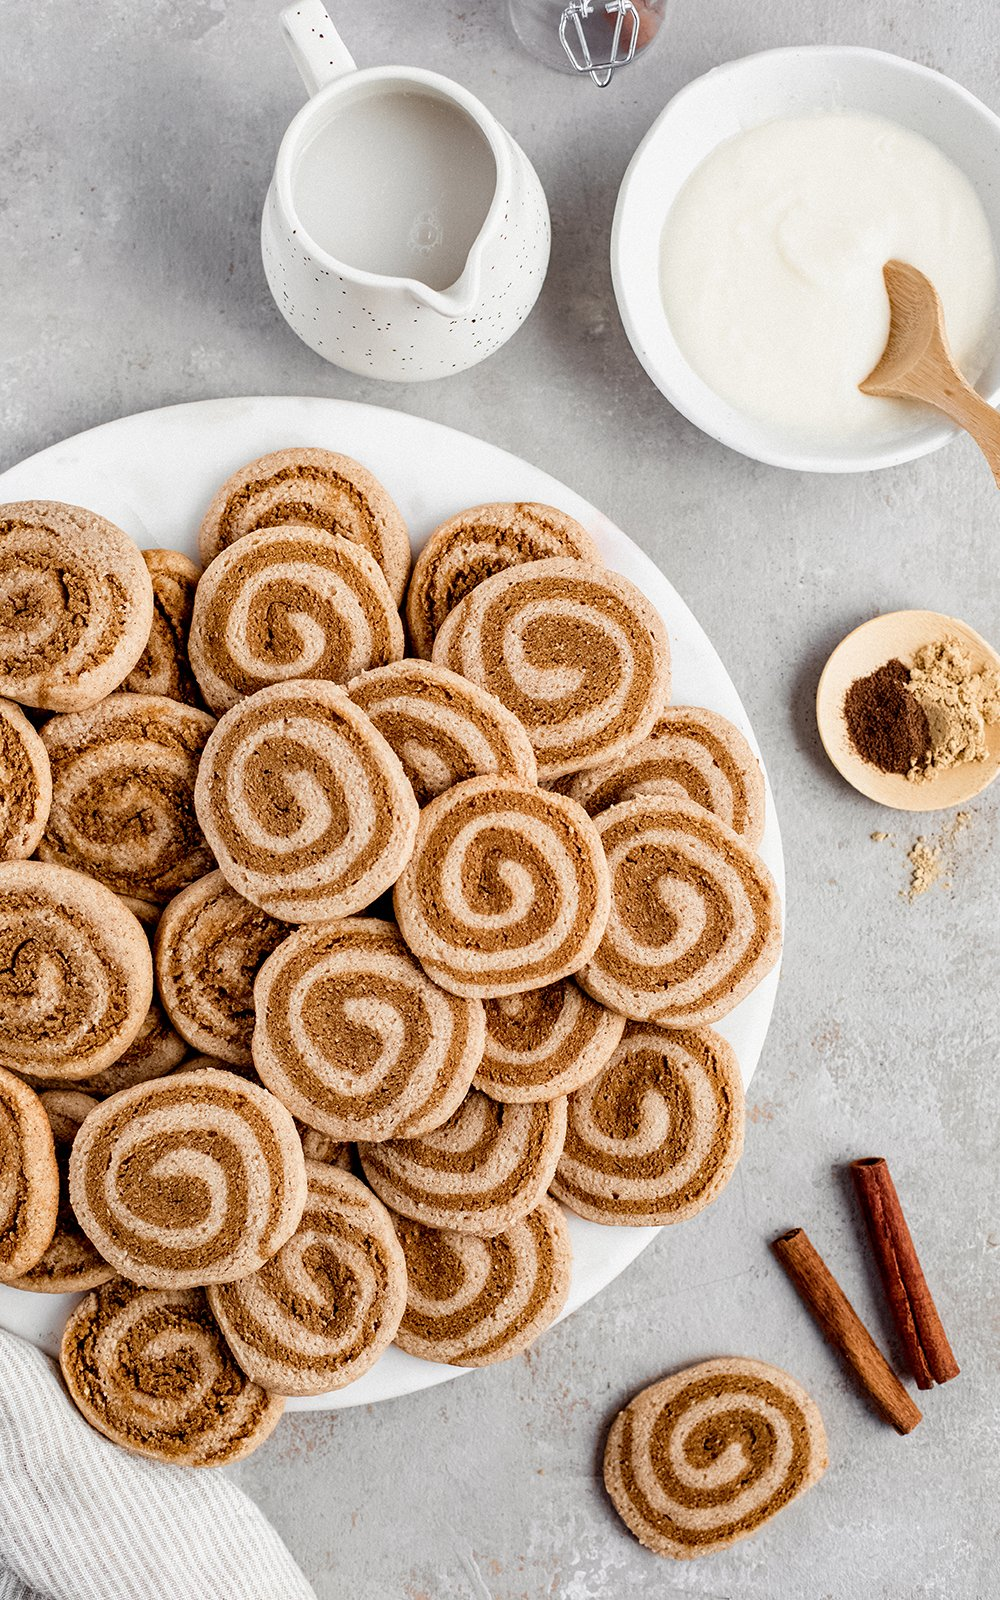 grain free gingerdoodle cookies on a plate next to a bowl of icing and cinnamon sticks